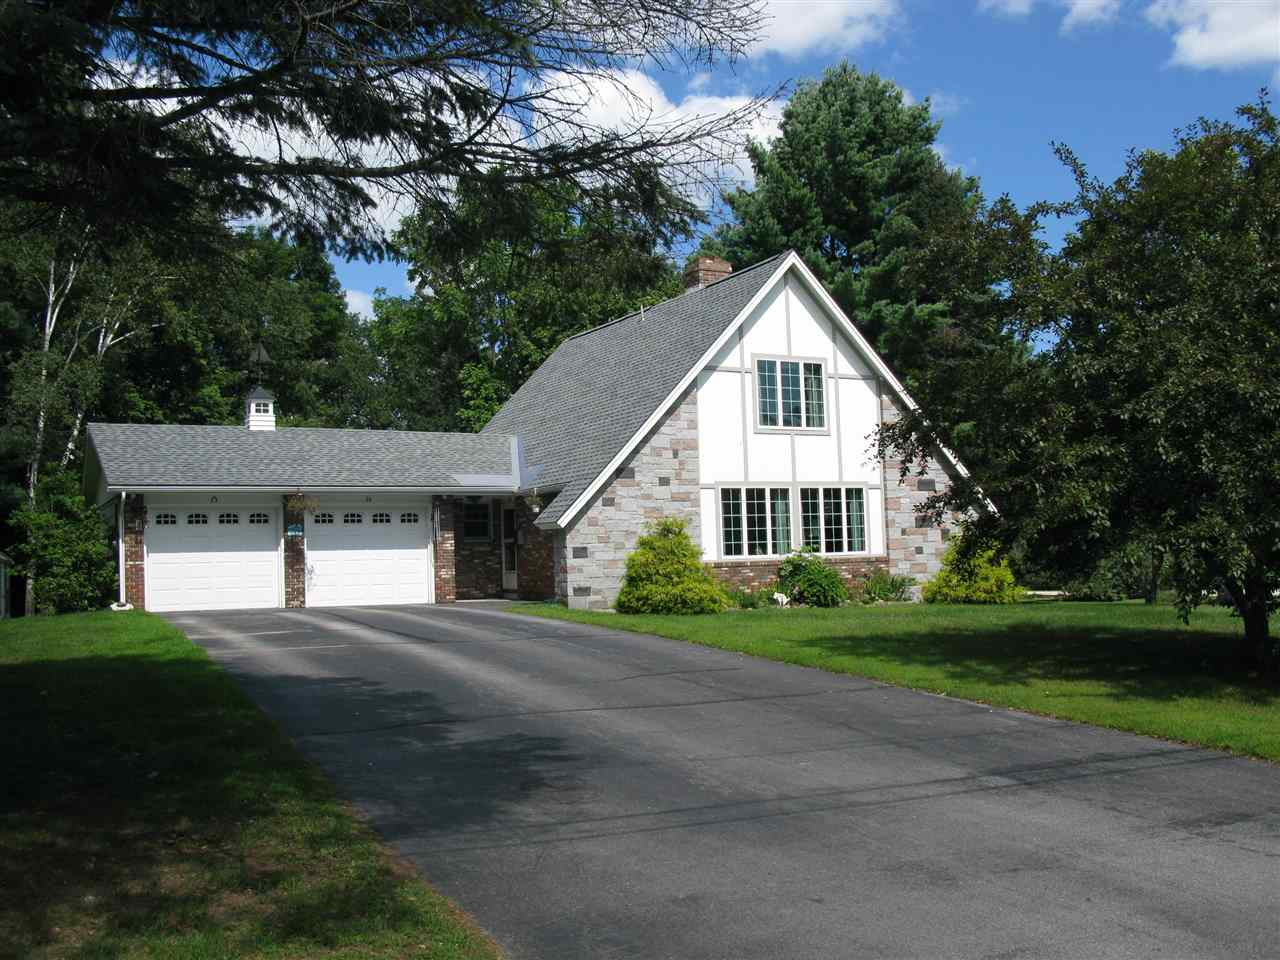 Residential Homes and Real Estate for Sale in Gorham, NH by price ...